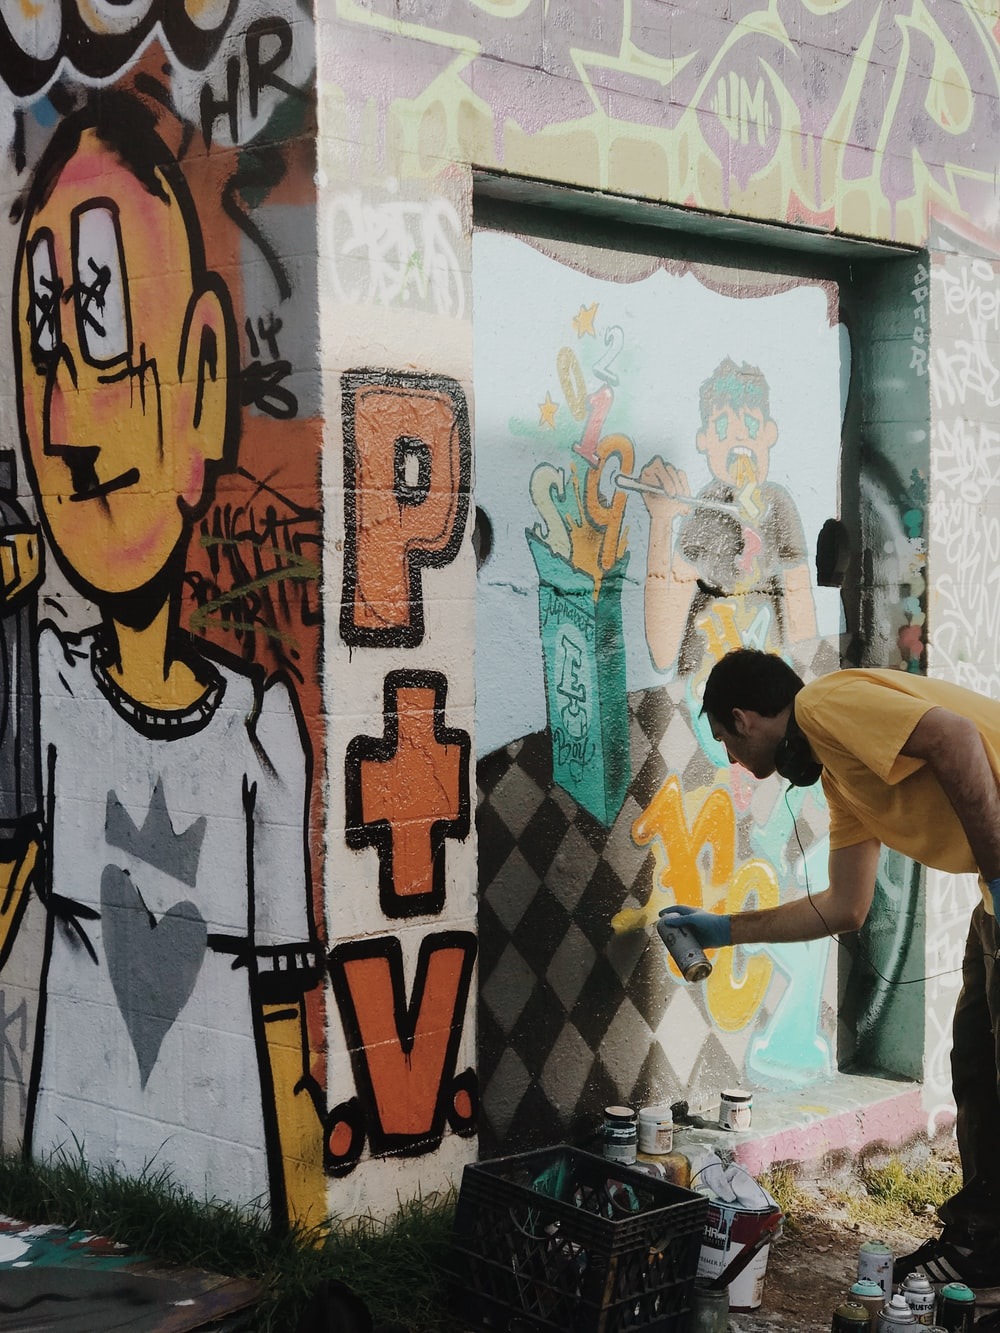 man in white t-shirt standing near wall with graffiti